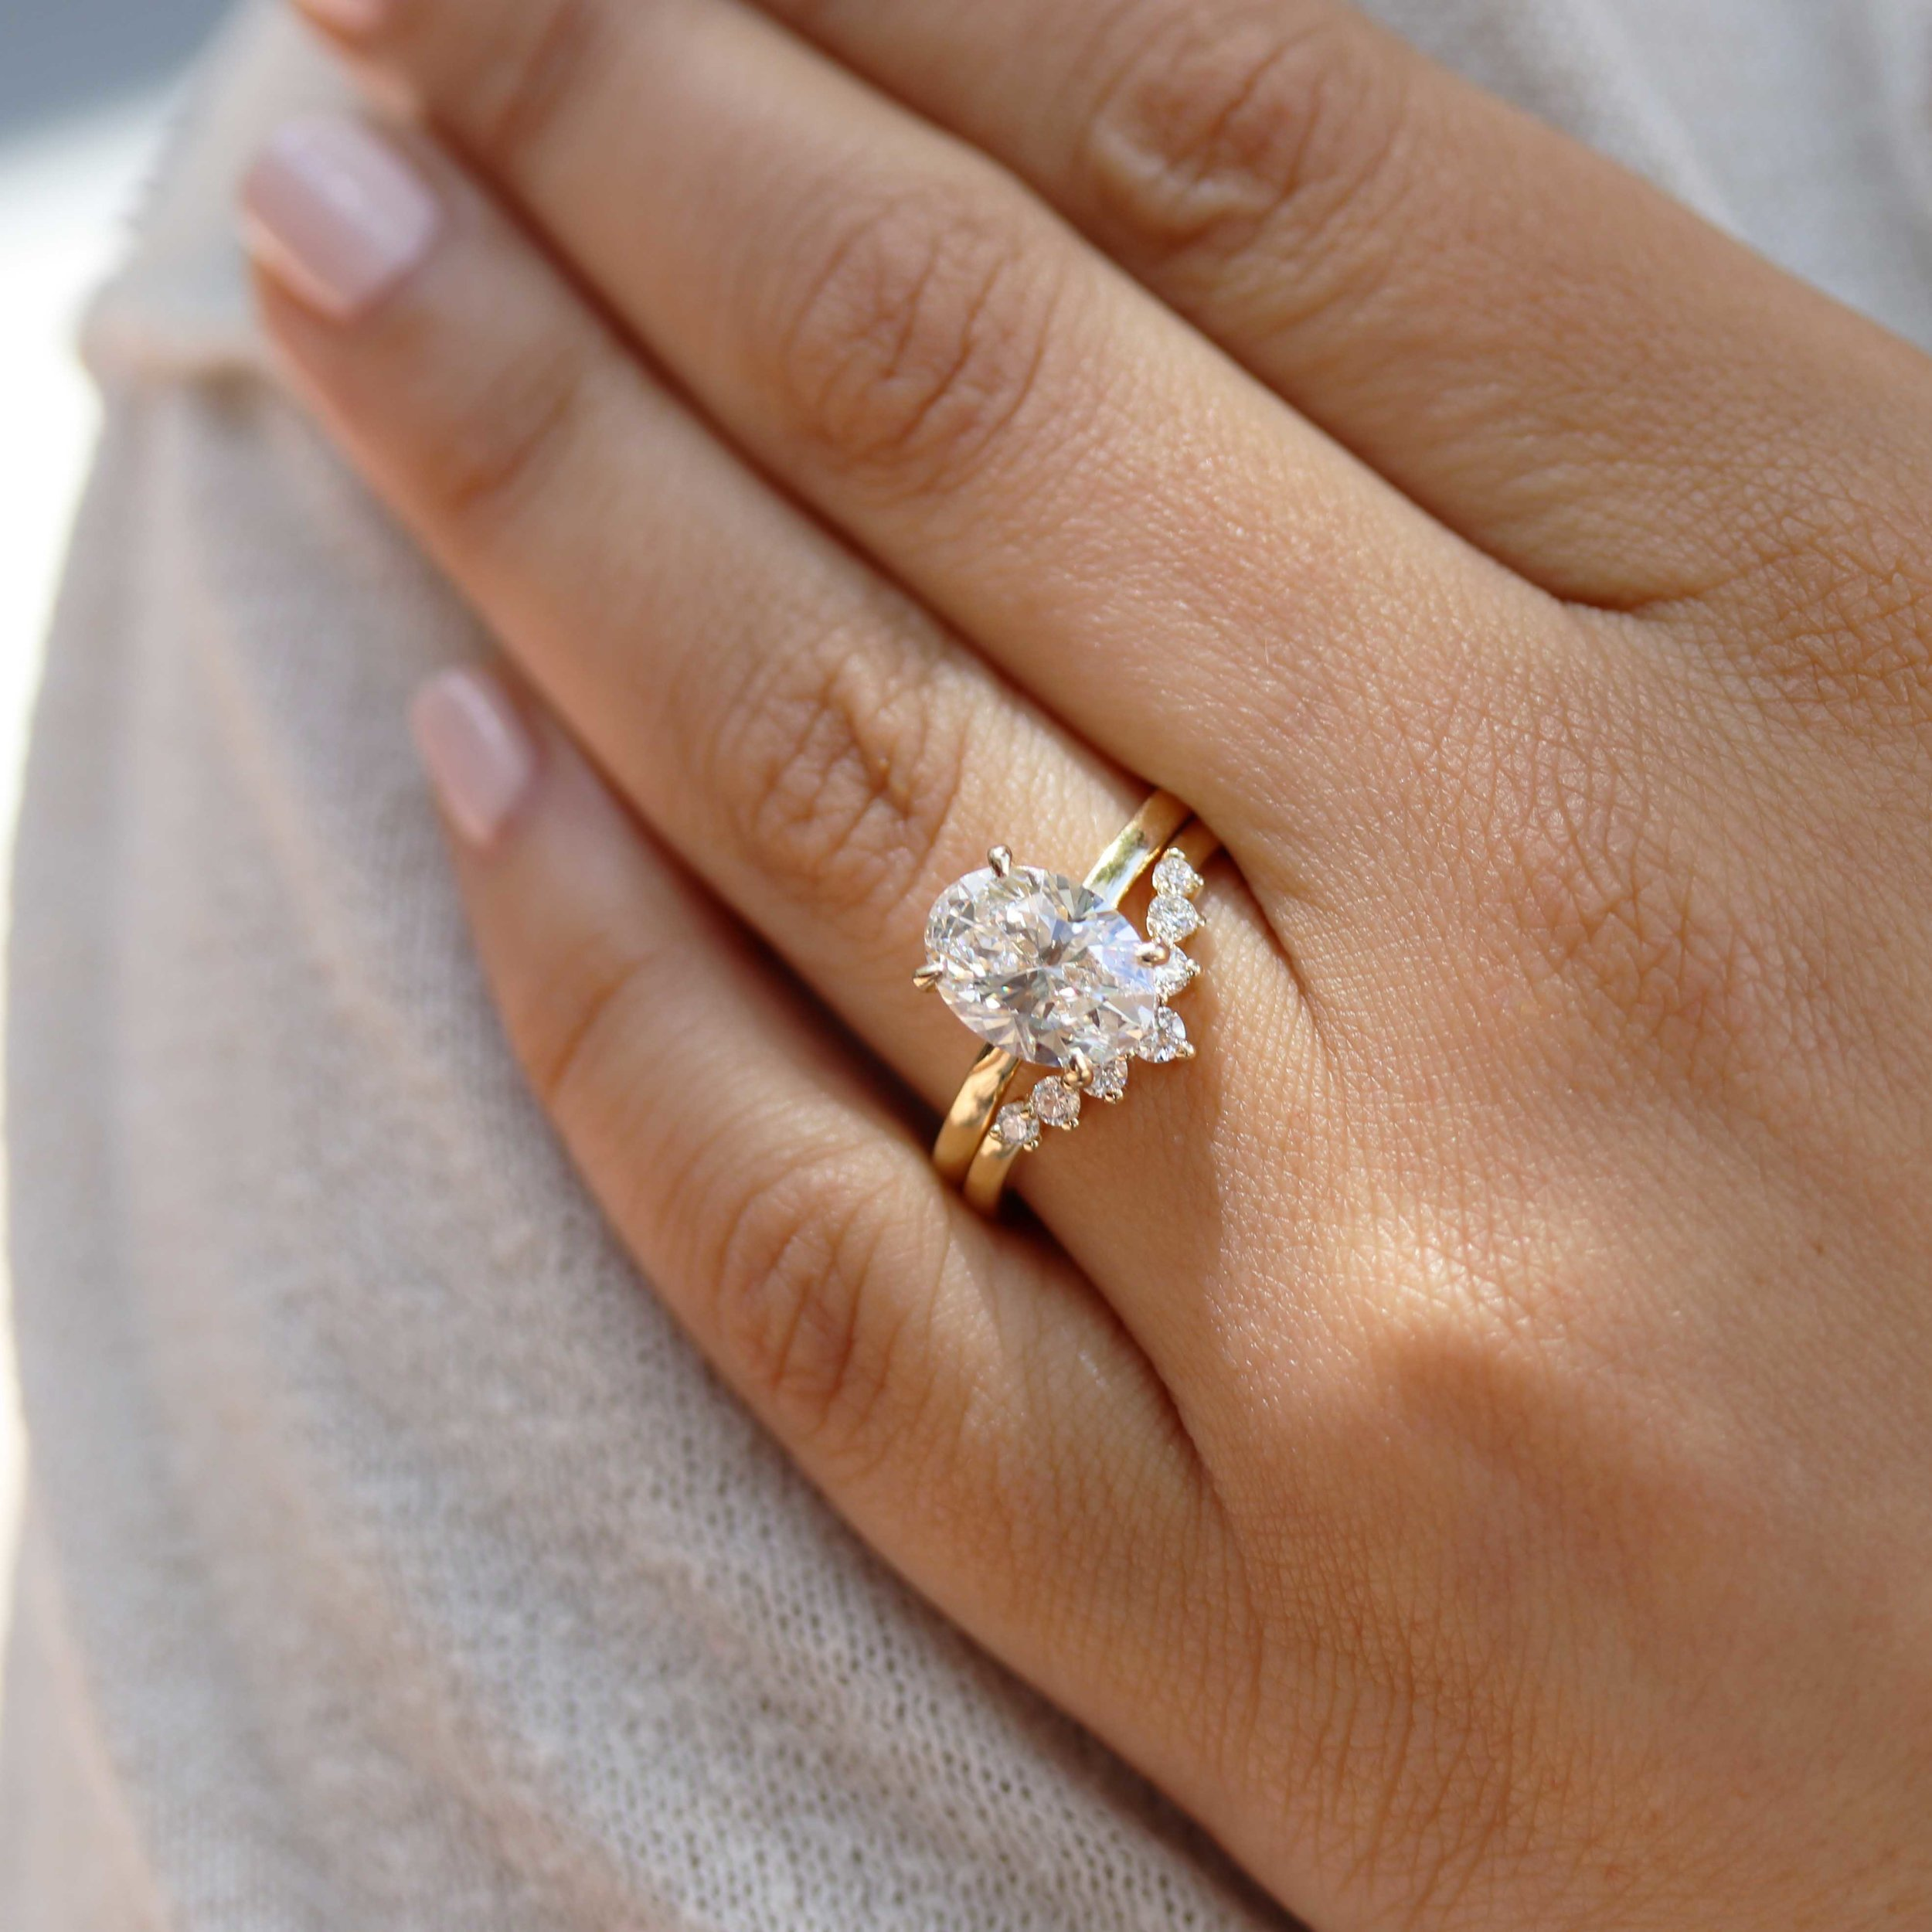 Nesting Wedding Band  From the Leader in Luxury Lab Diamonds